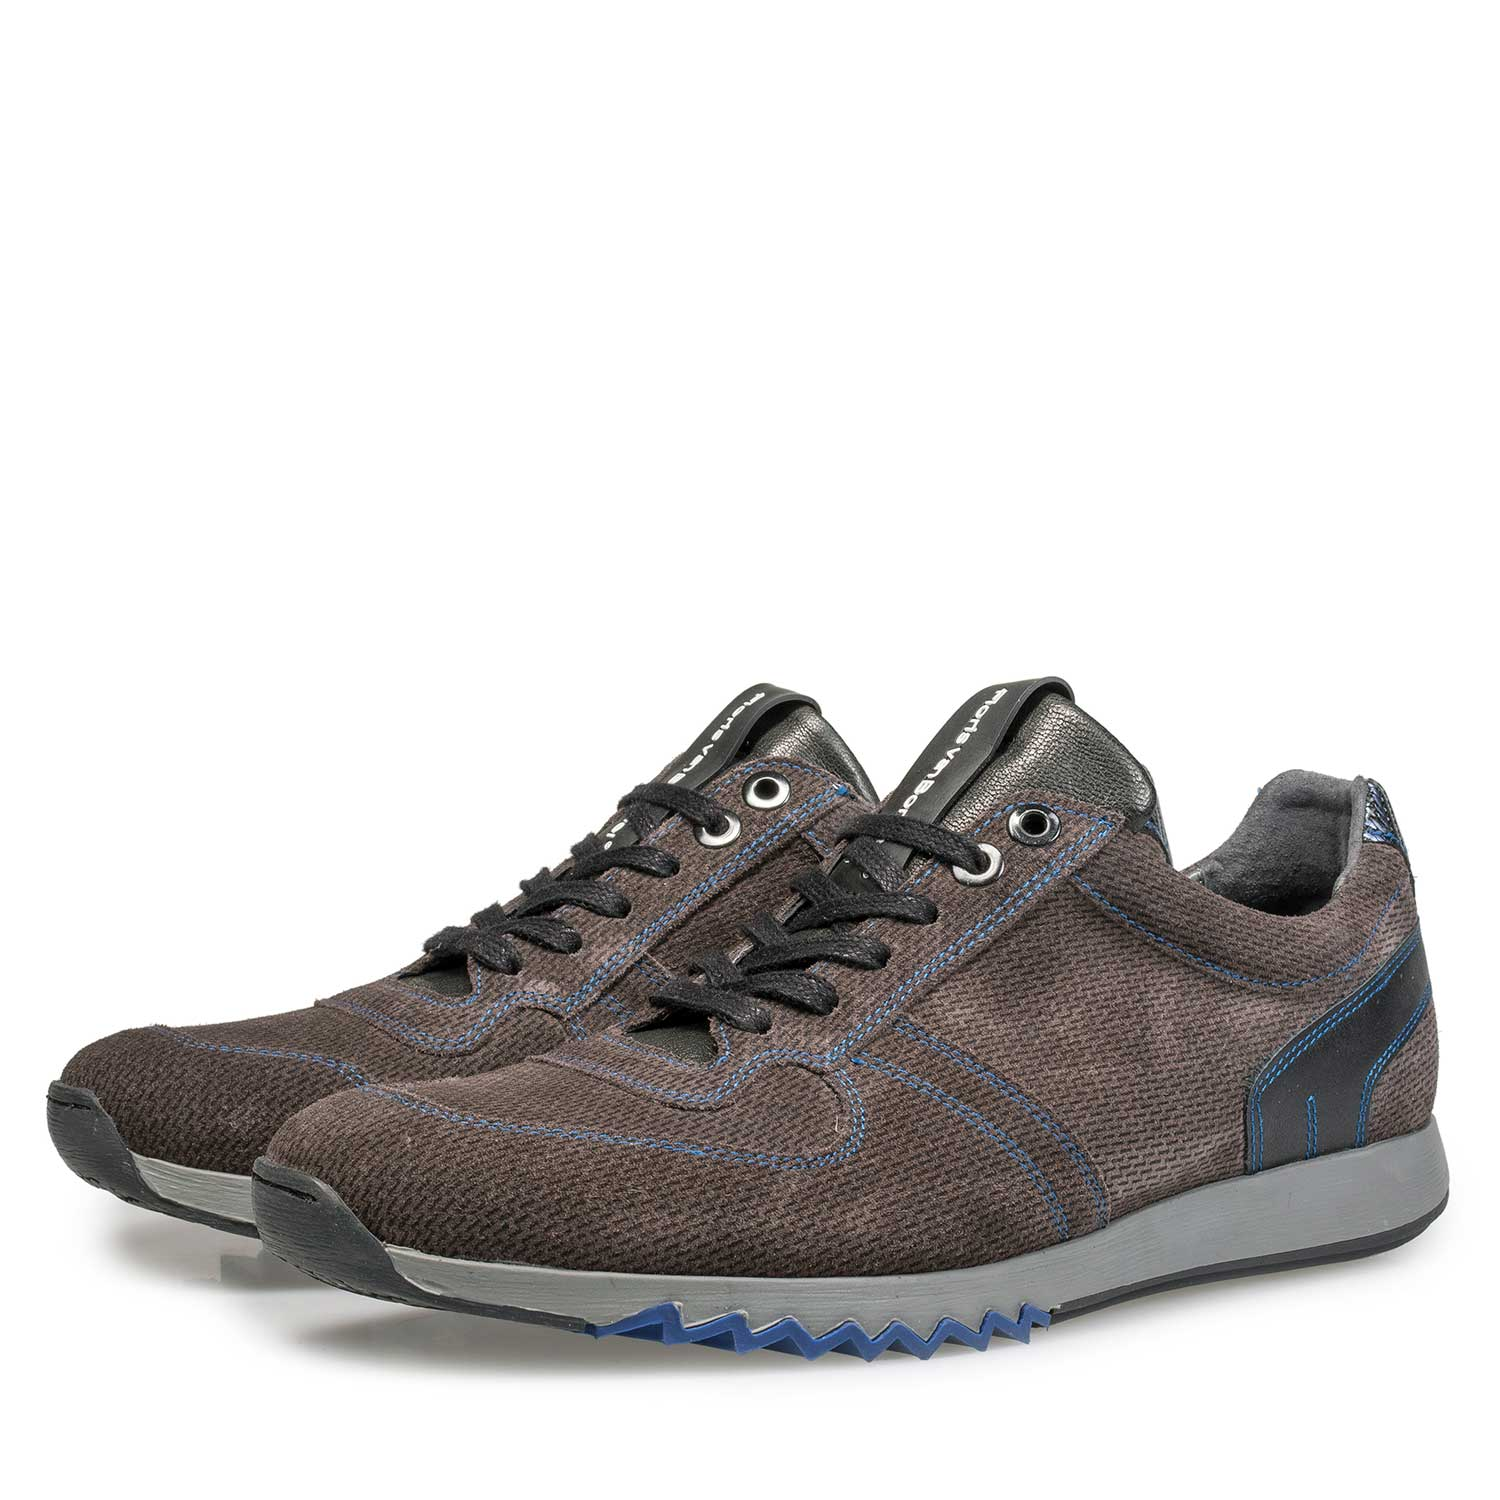 16171/08 - Grey-brown sneaker with cobalt blue details